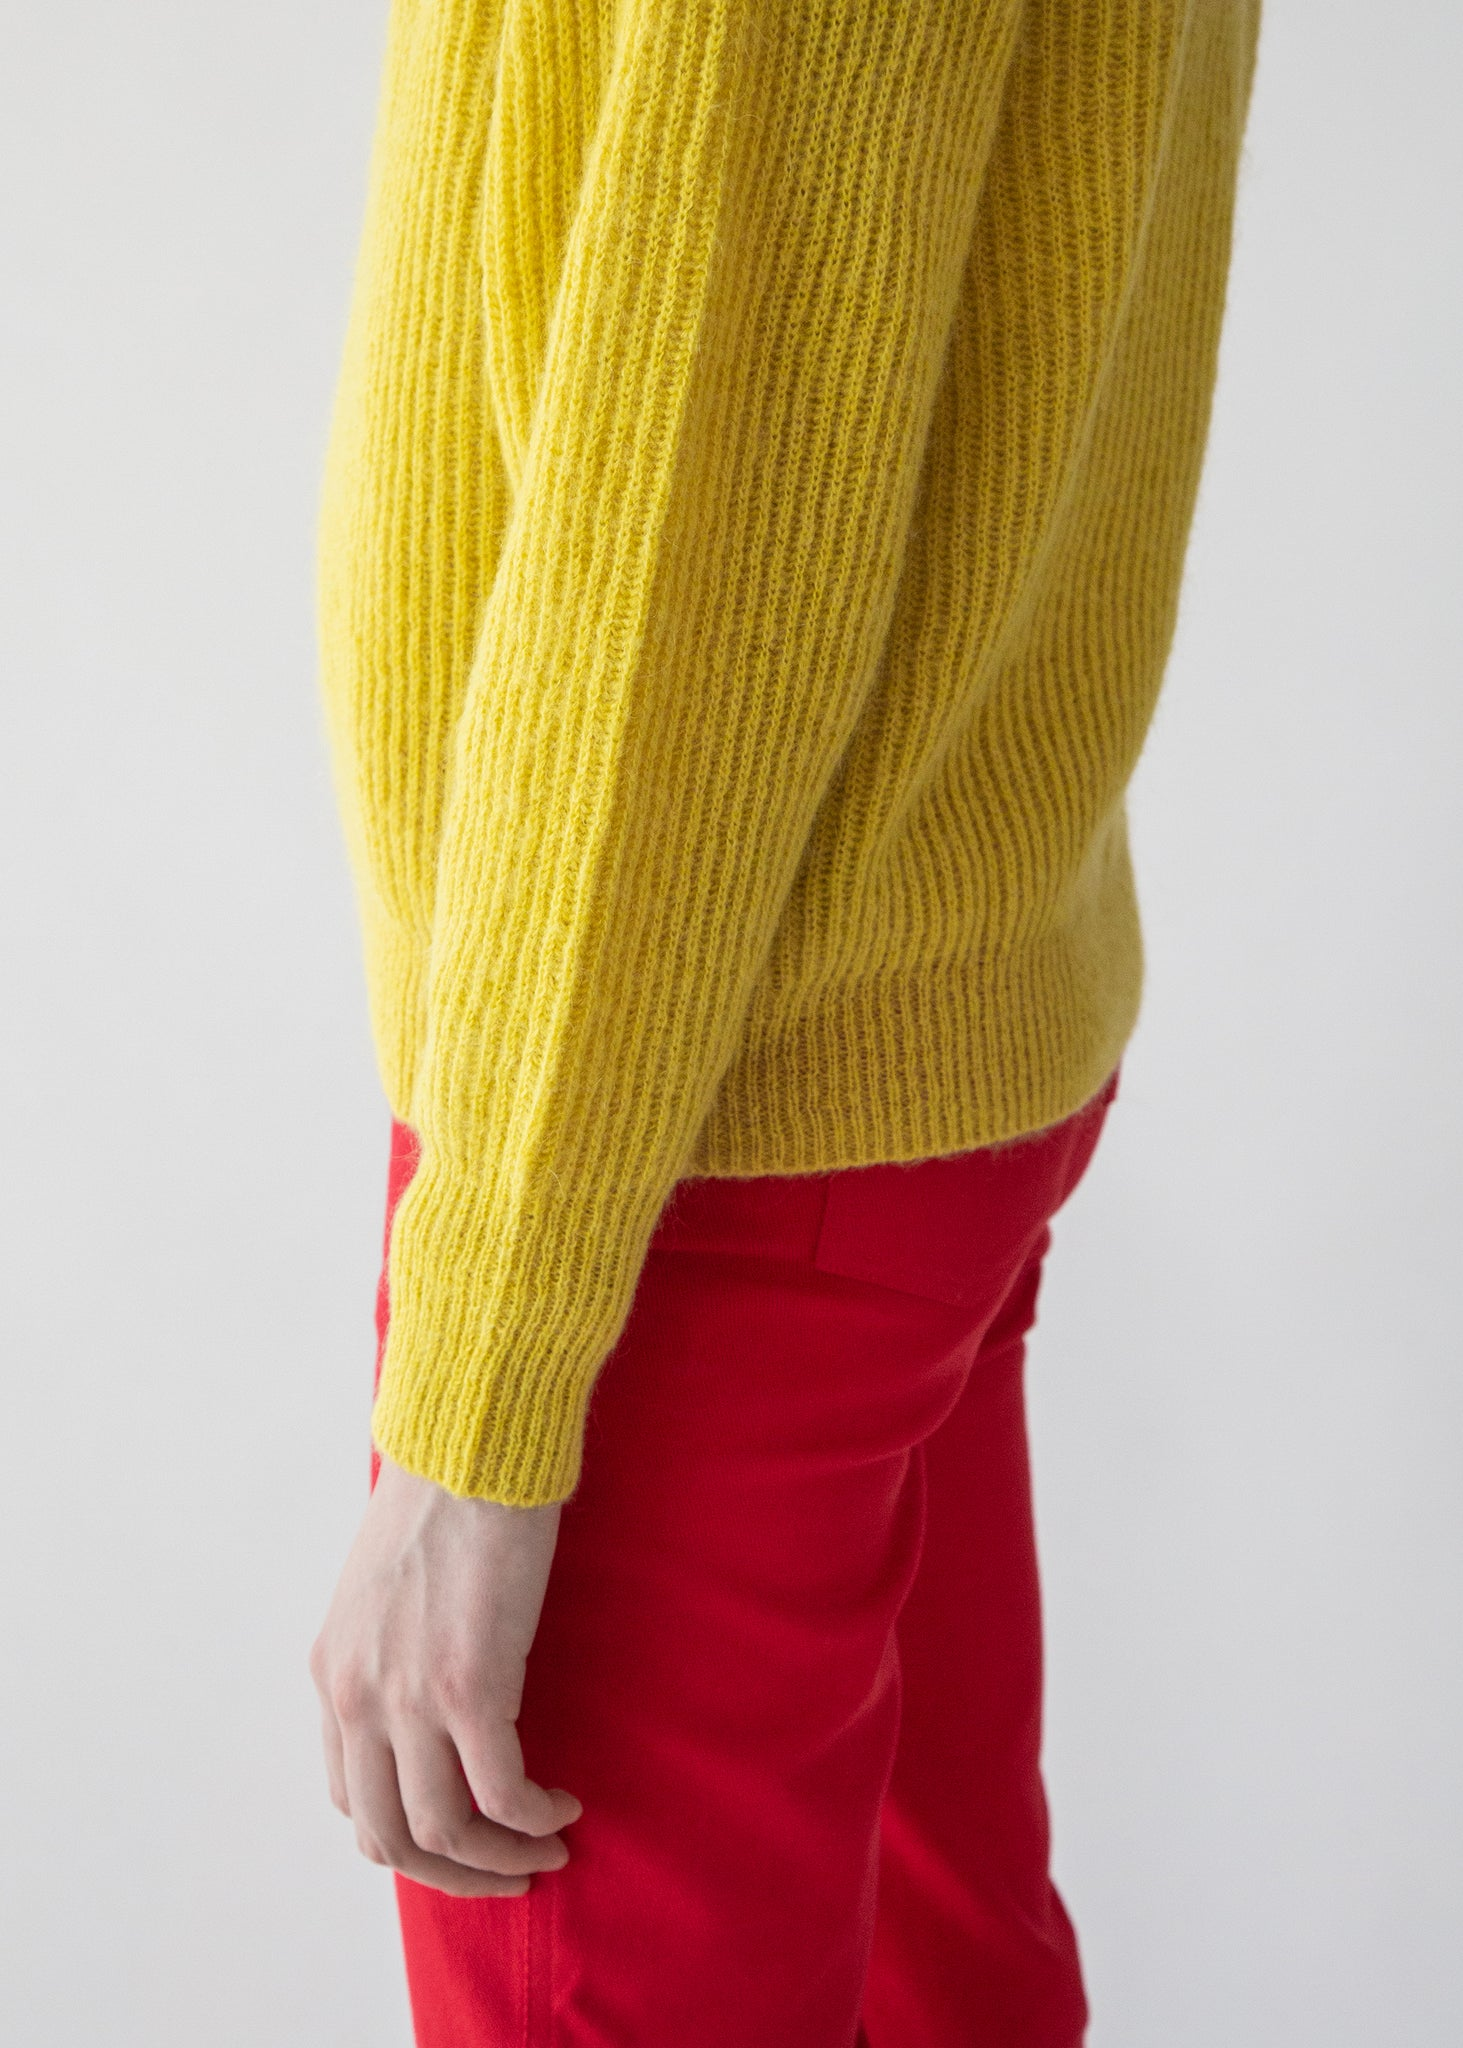 Darwin Sweater in Citrus